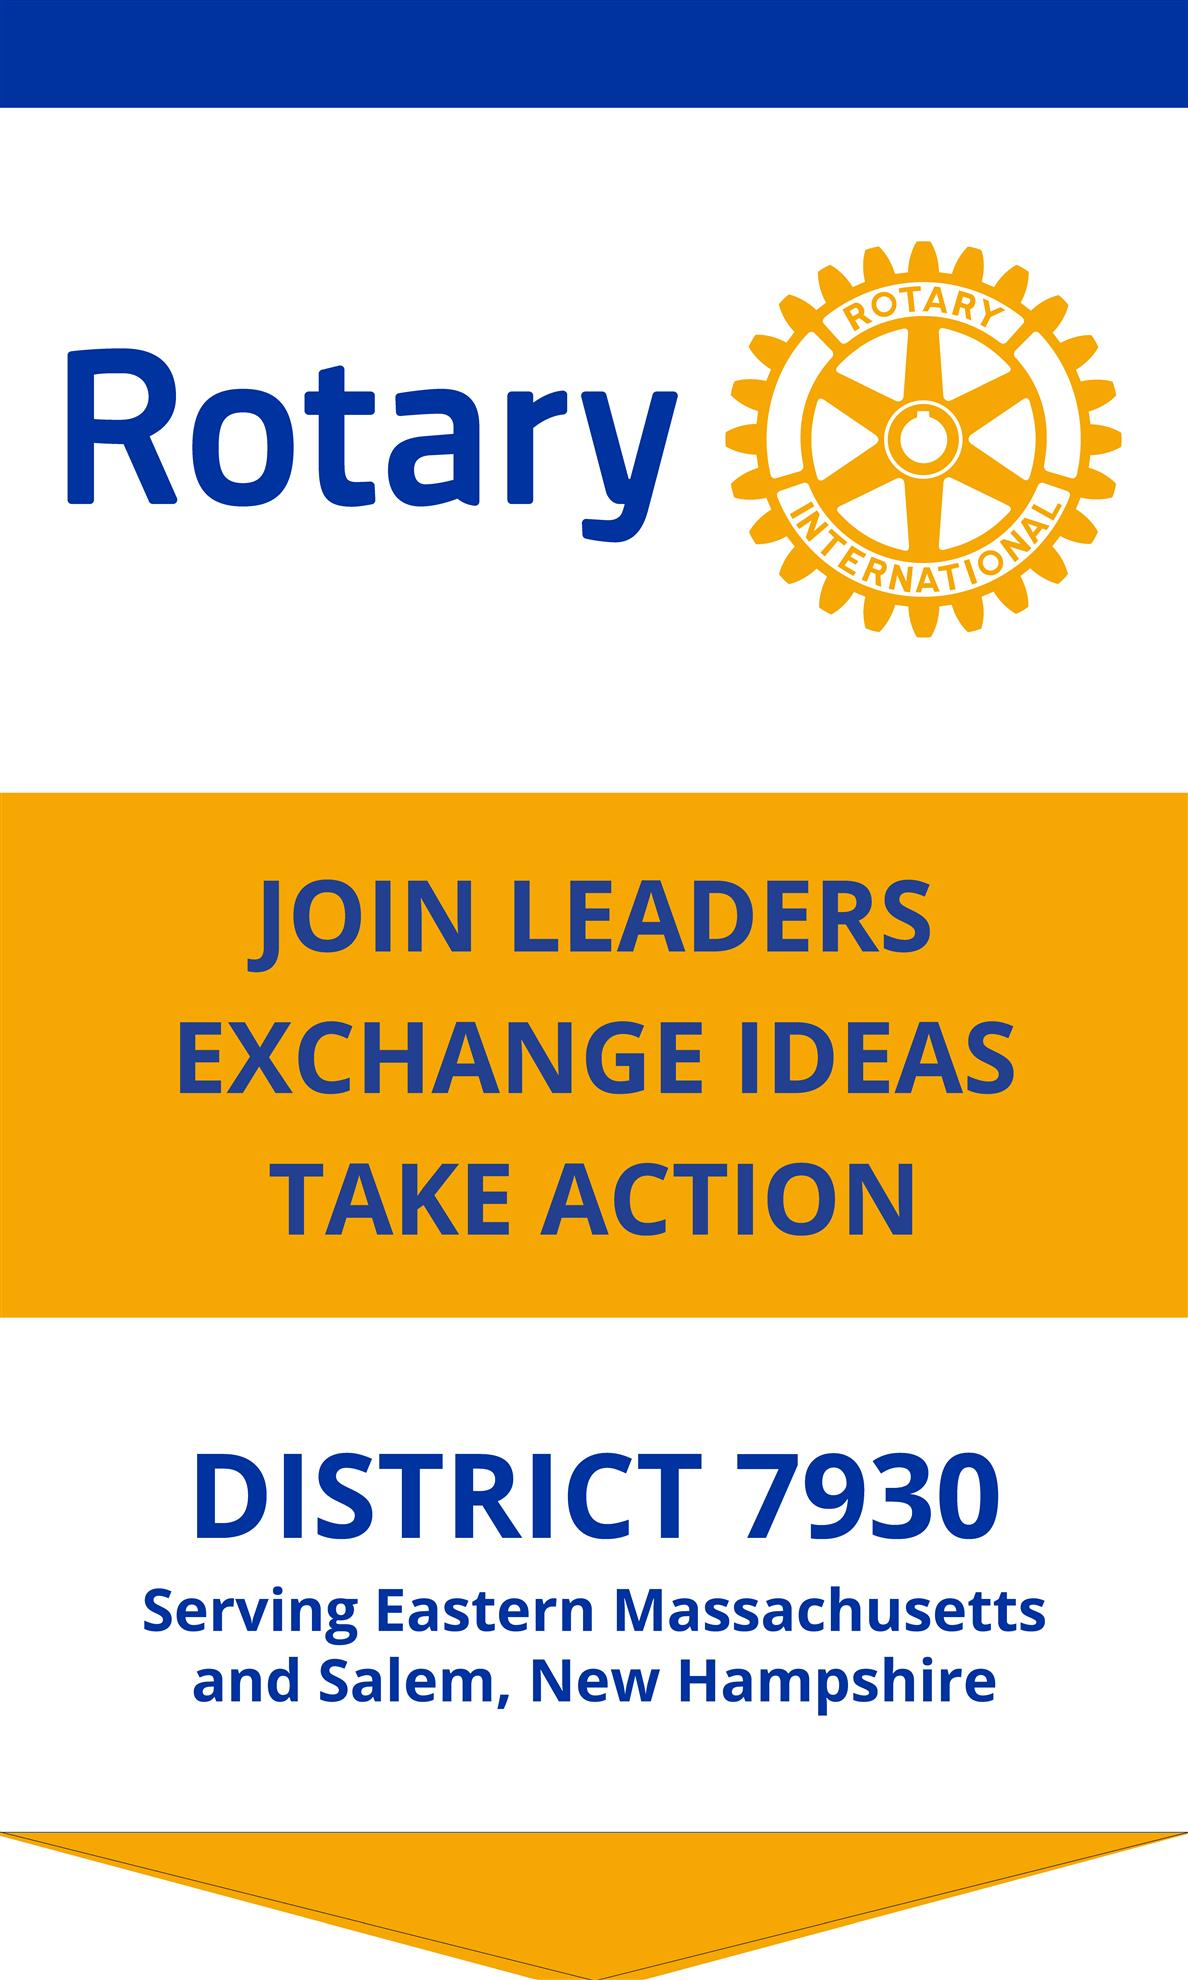 Stories district 7930 nominations are being requested for district governor for the 2020 2021 and we need club support to find the best candidates to lead our district nvjuhfo Choice Image